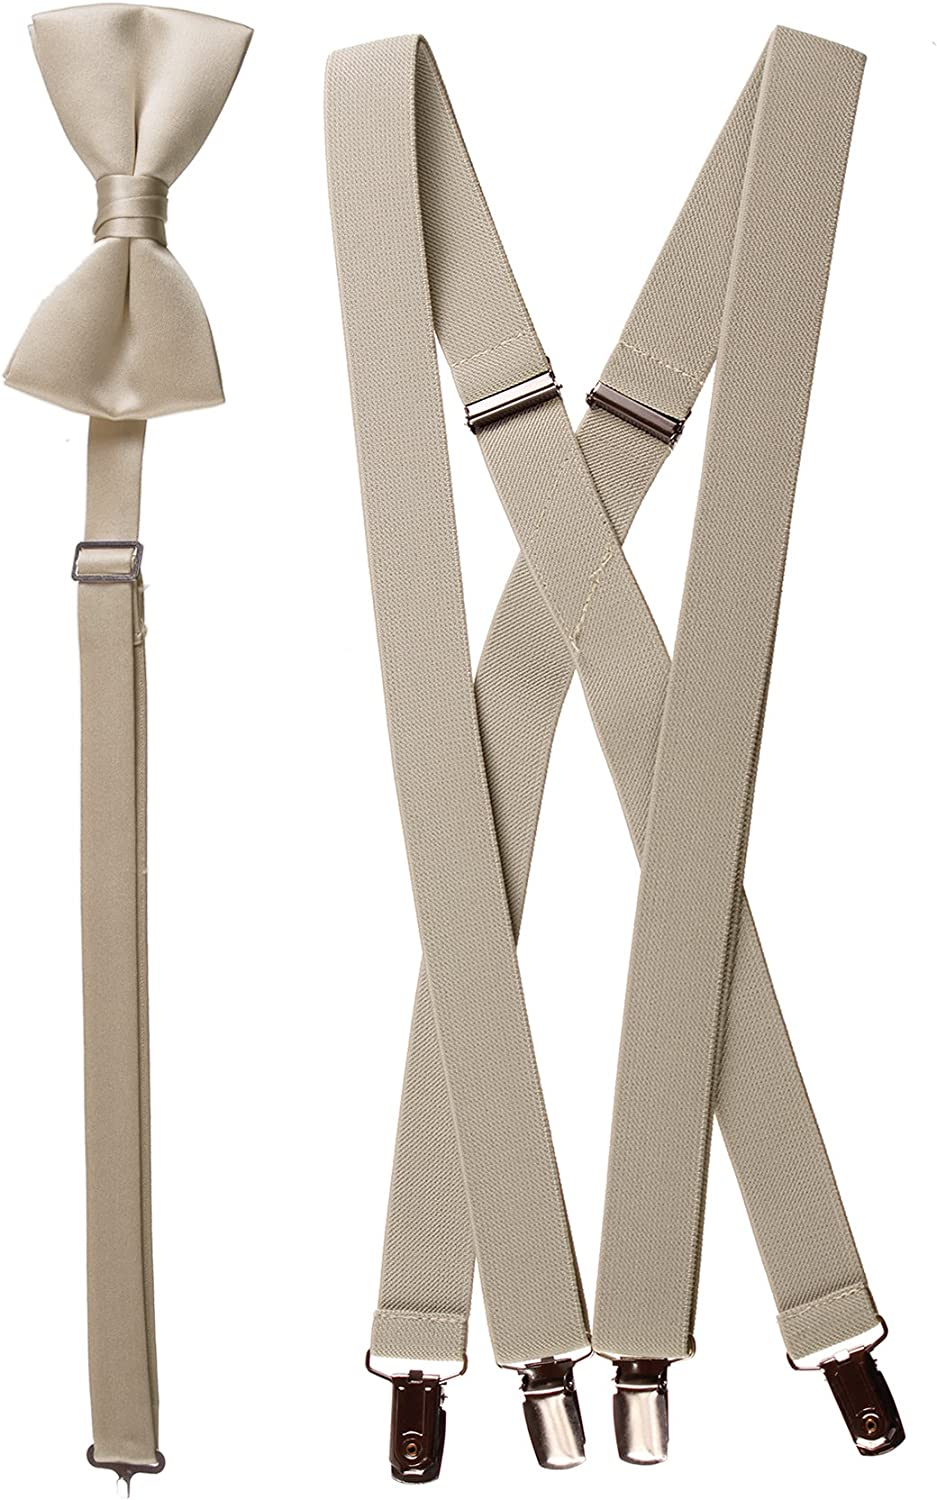 Matching Tan Adjustable Suspender and Bow Tie Sets, Kids to Adults Sizing